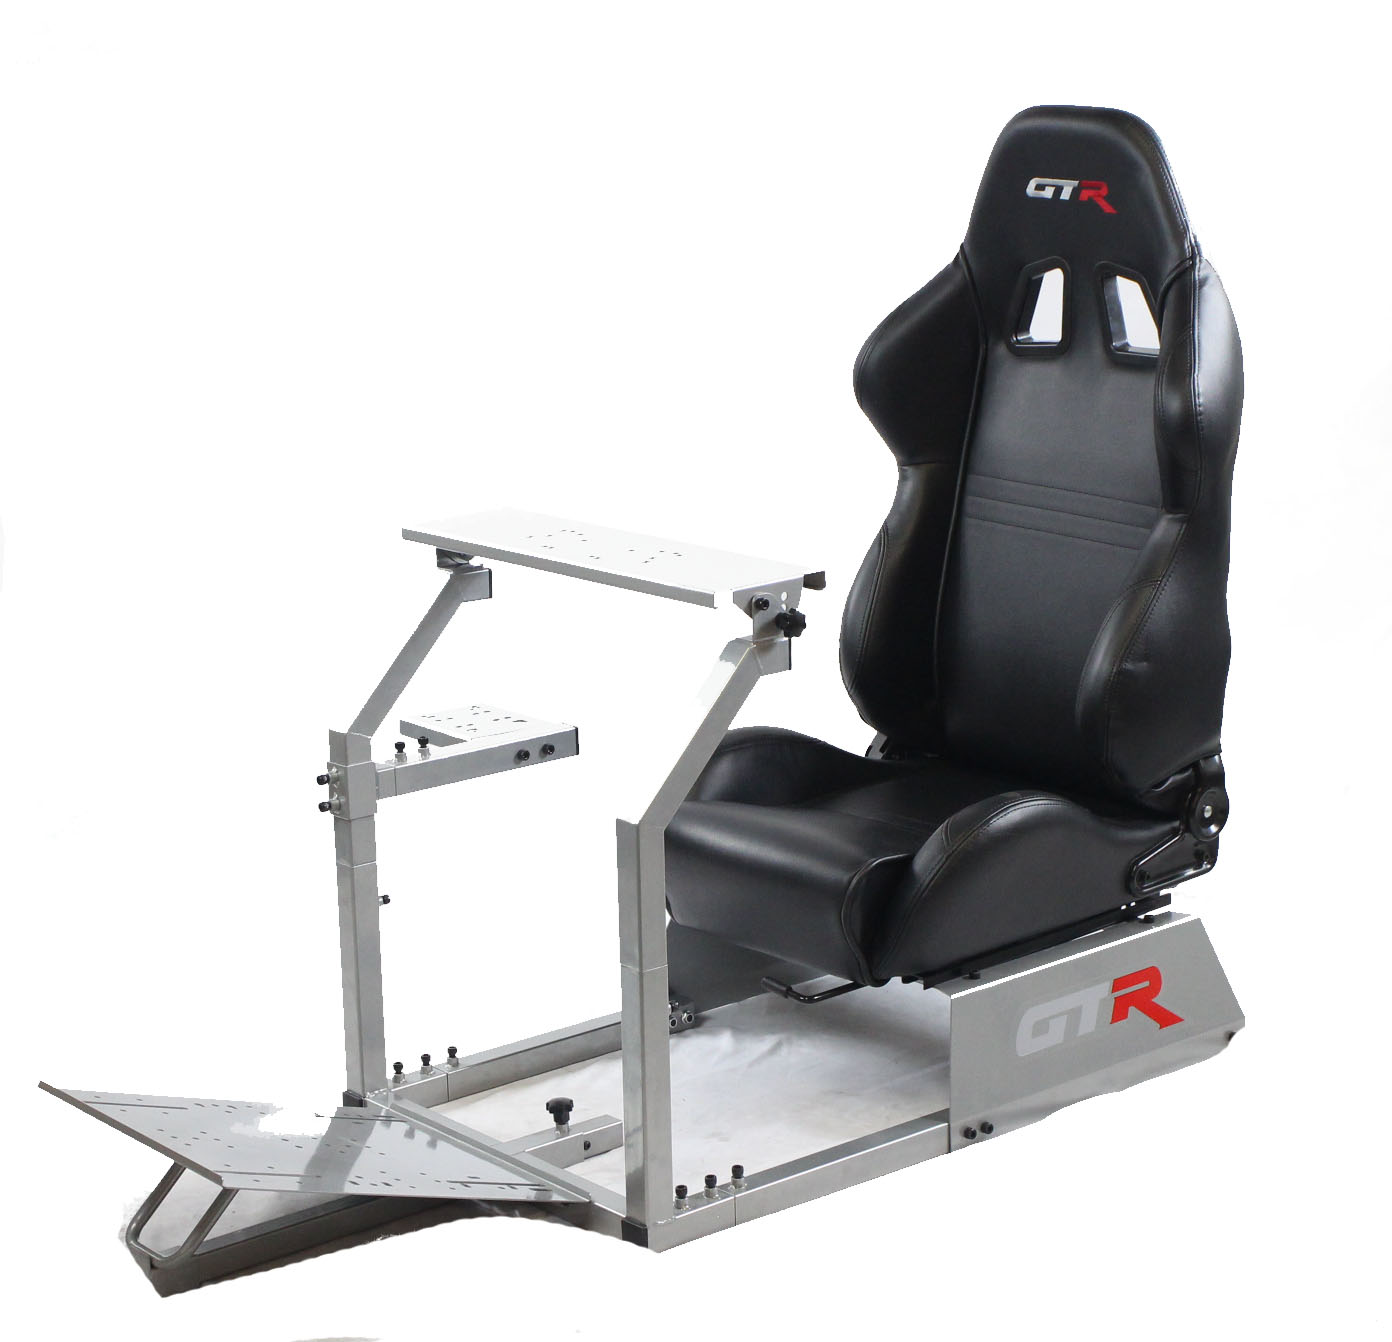 GTR Racing Simulator - GTA Model with Real Racing Seat, Driving Simulator Cockpit Gaming Chair with Gear Shifter Mount